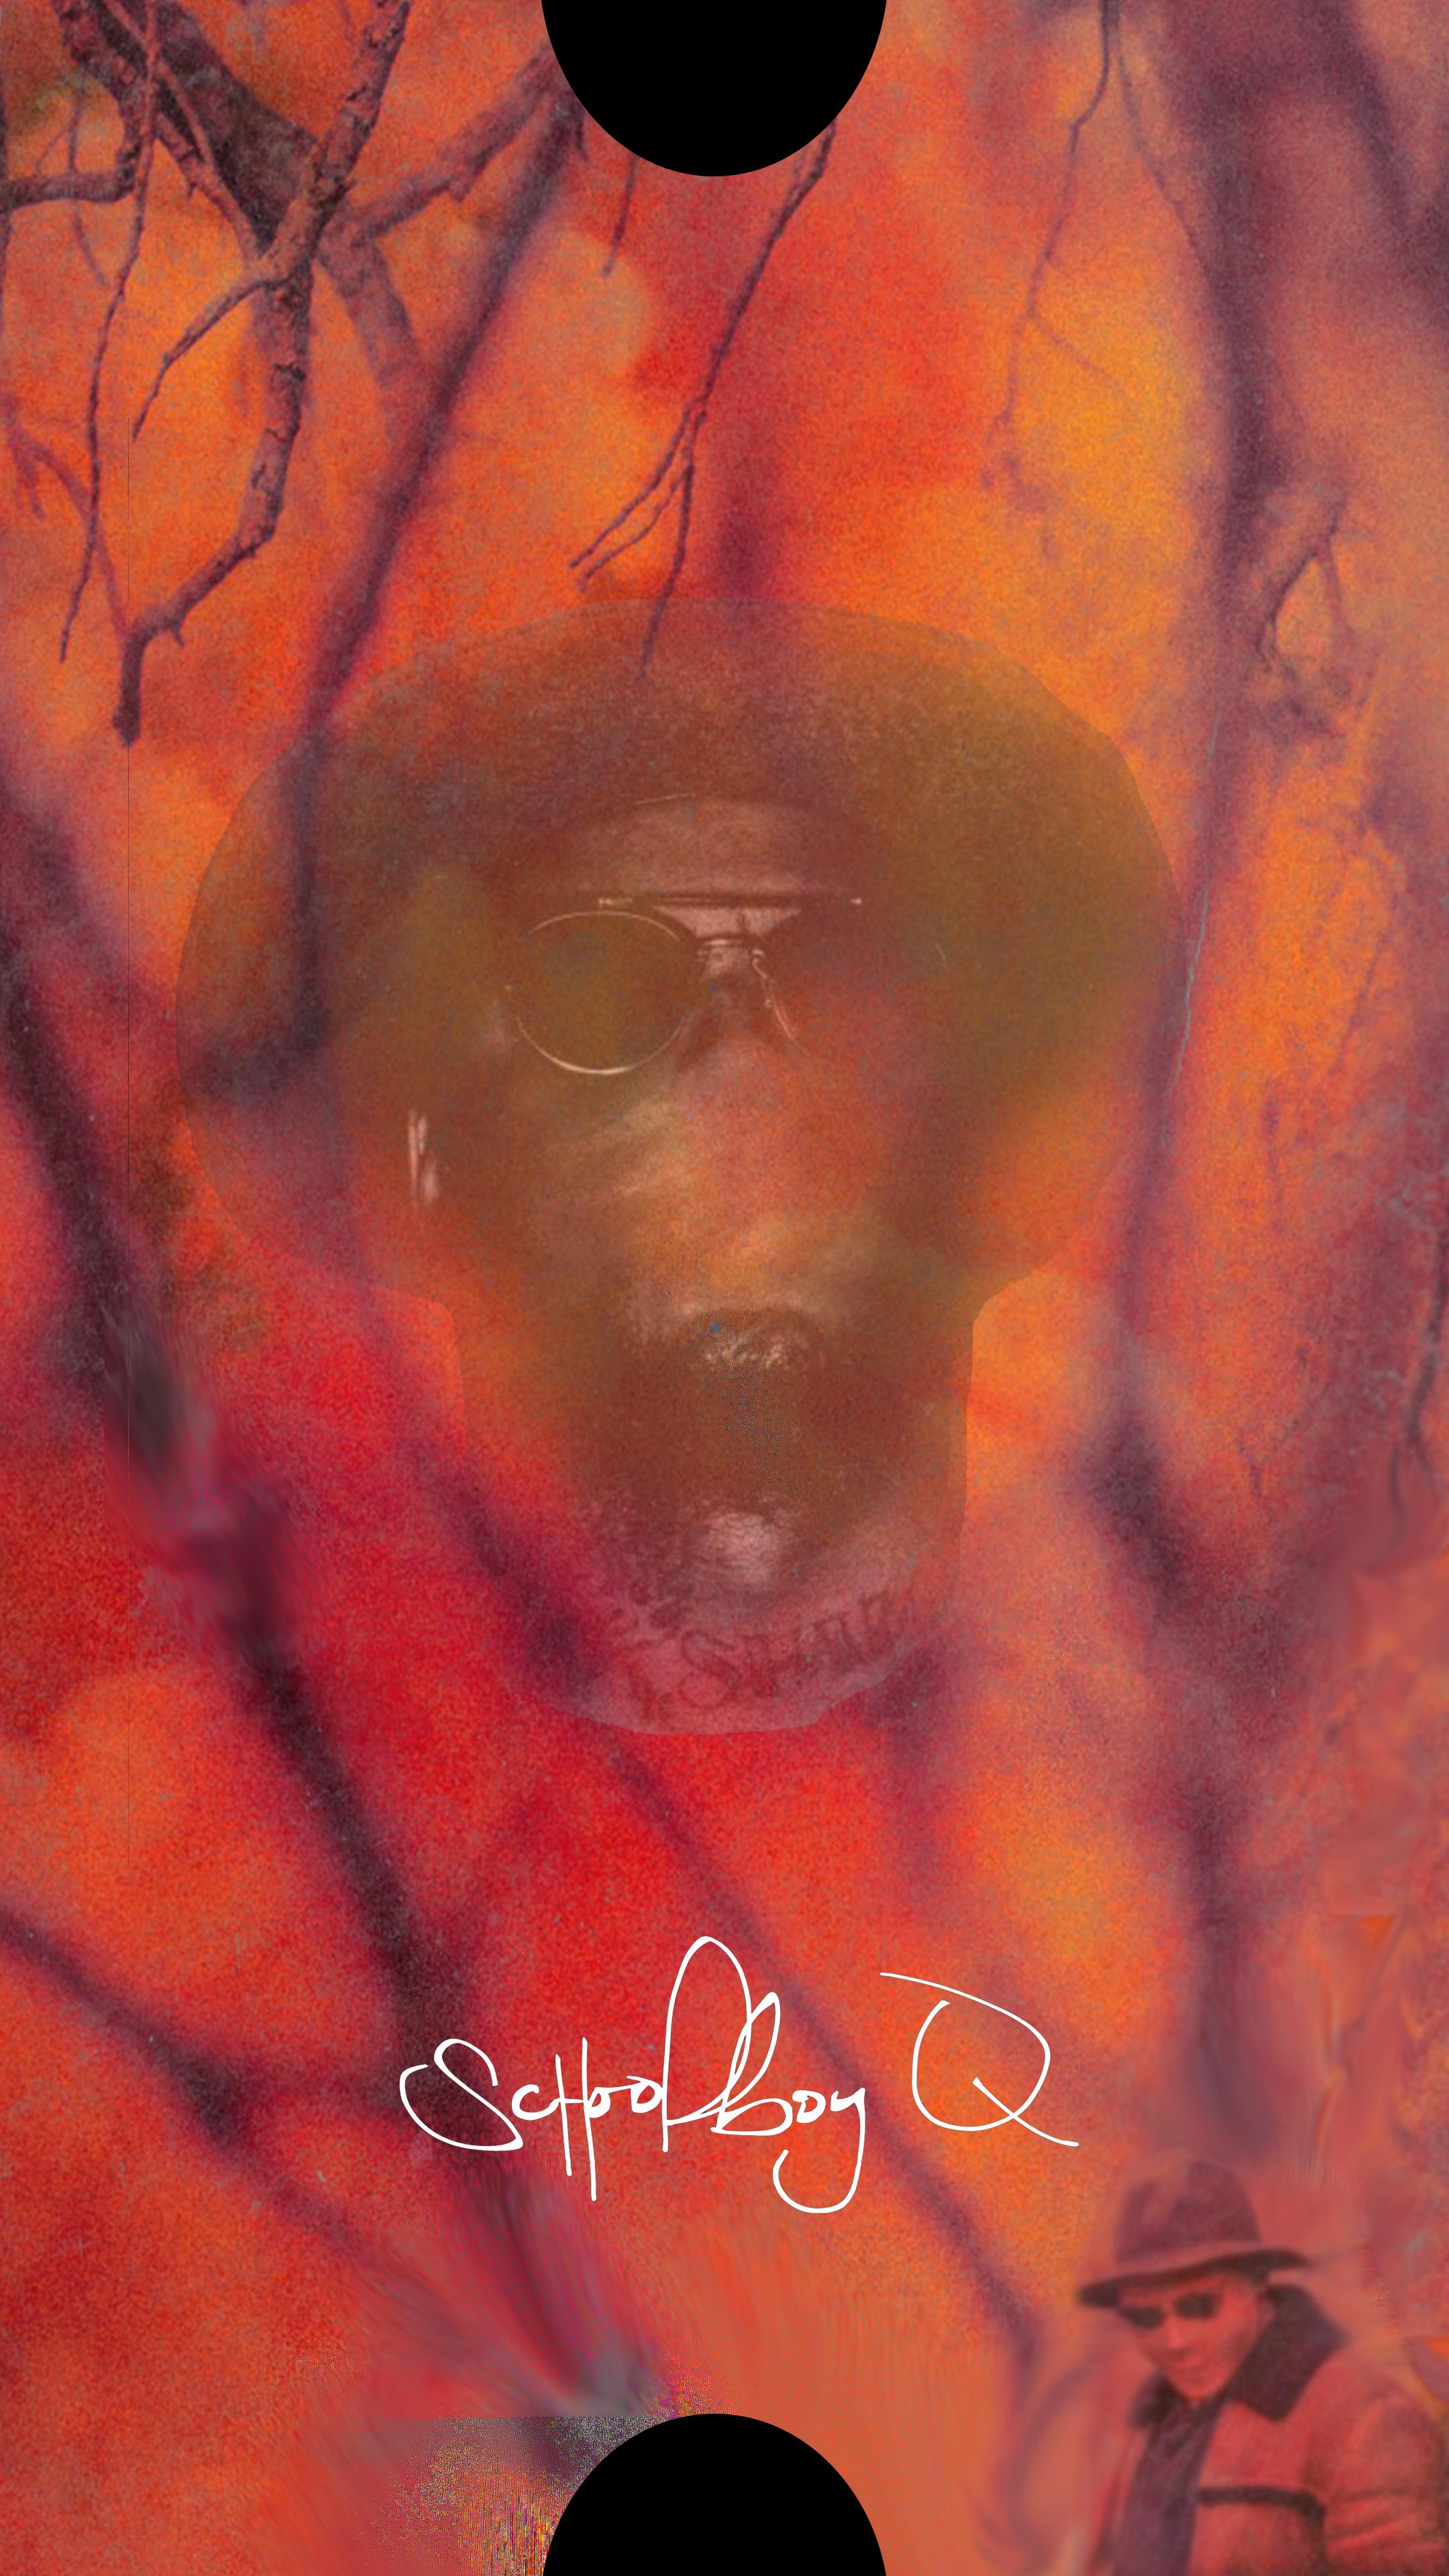 schoolboy q blank face lp album download